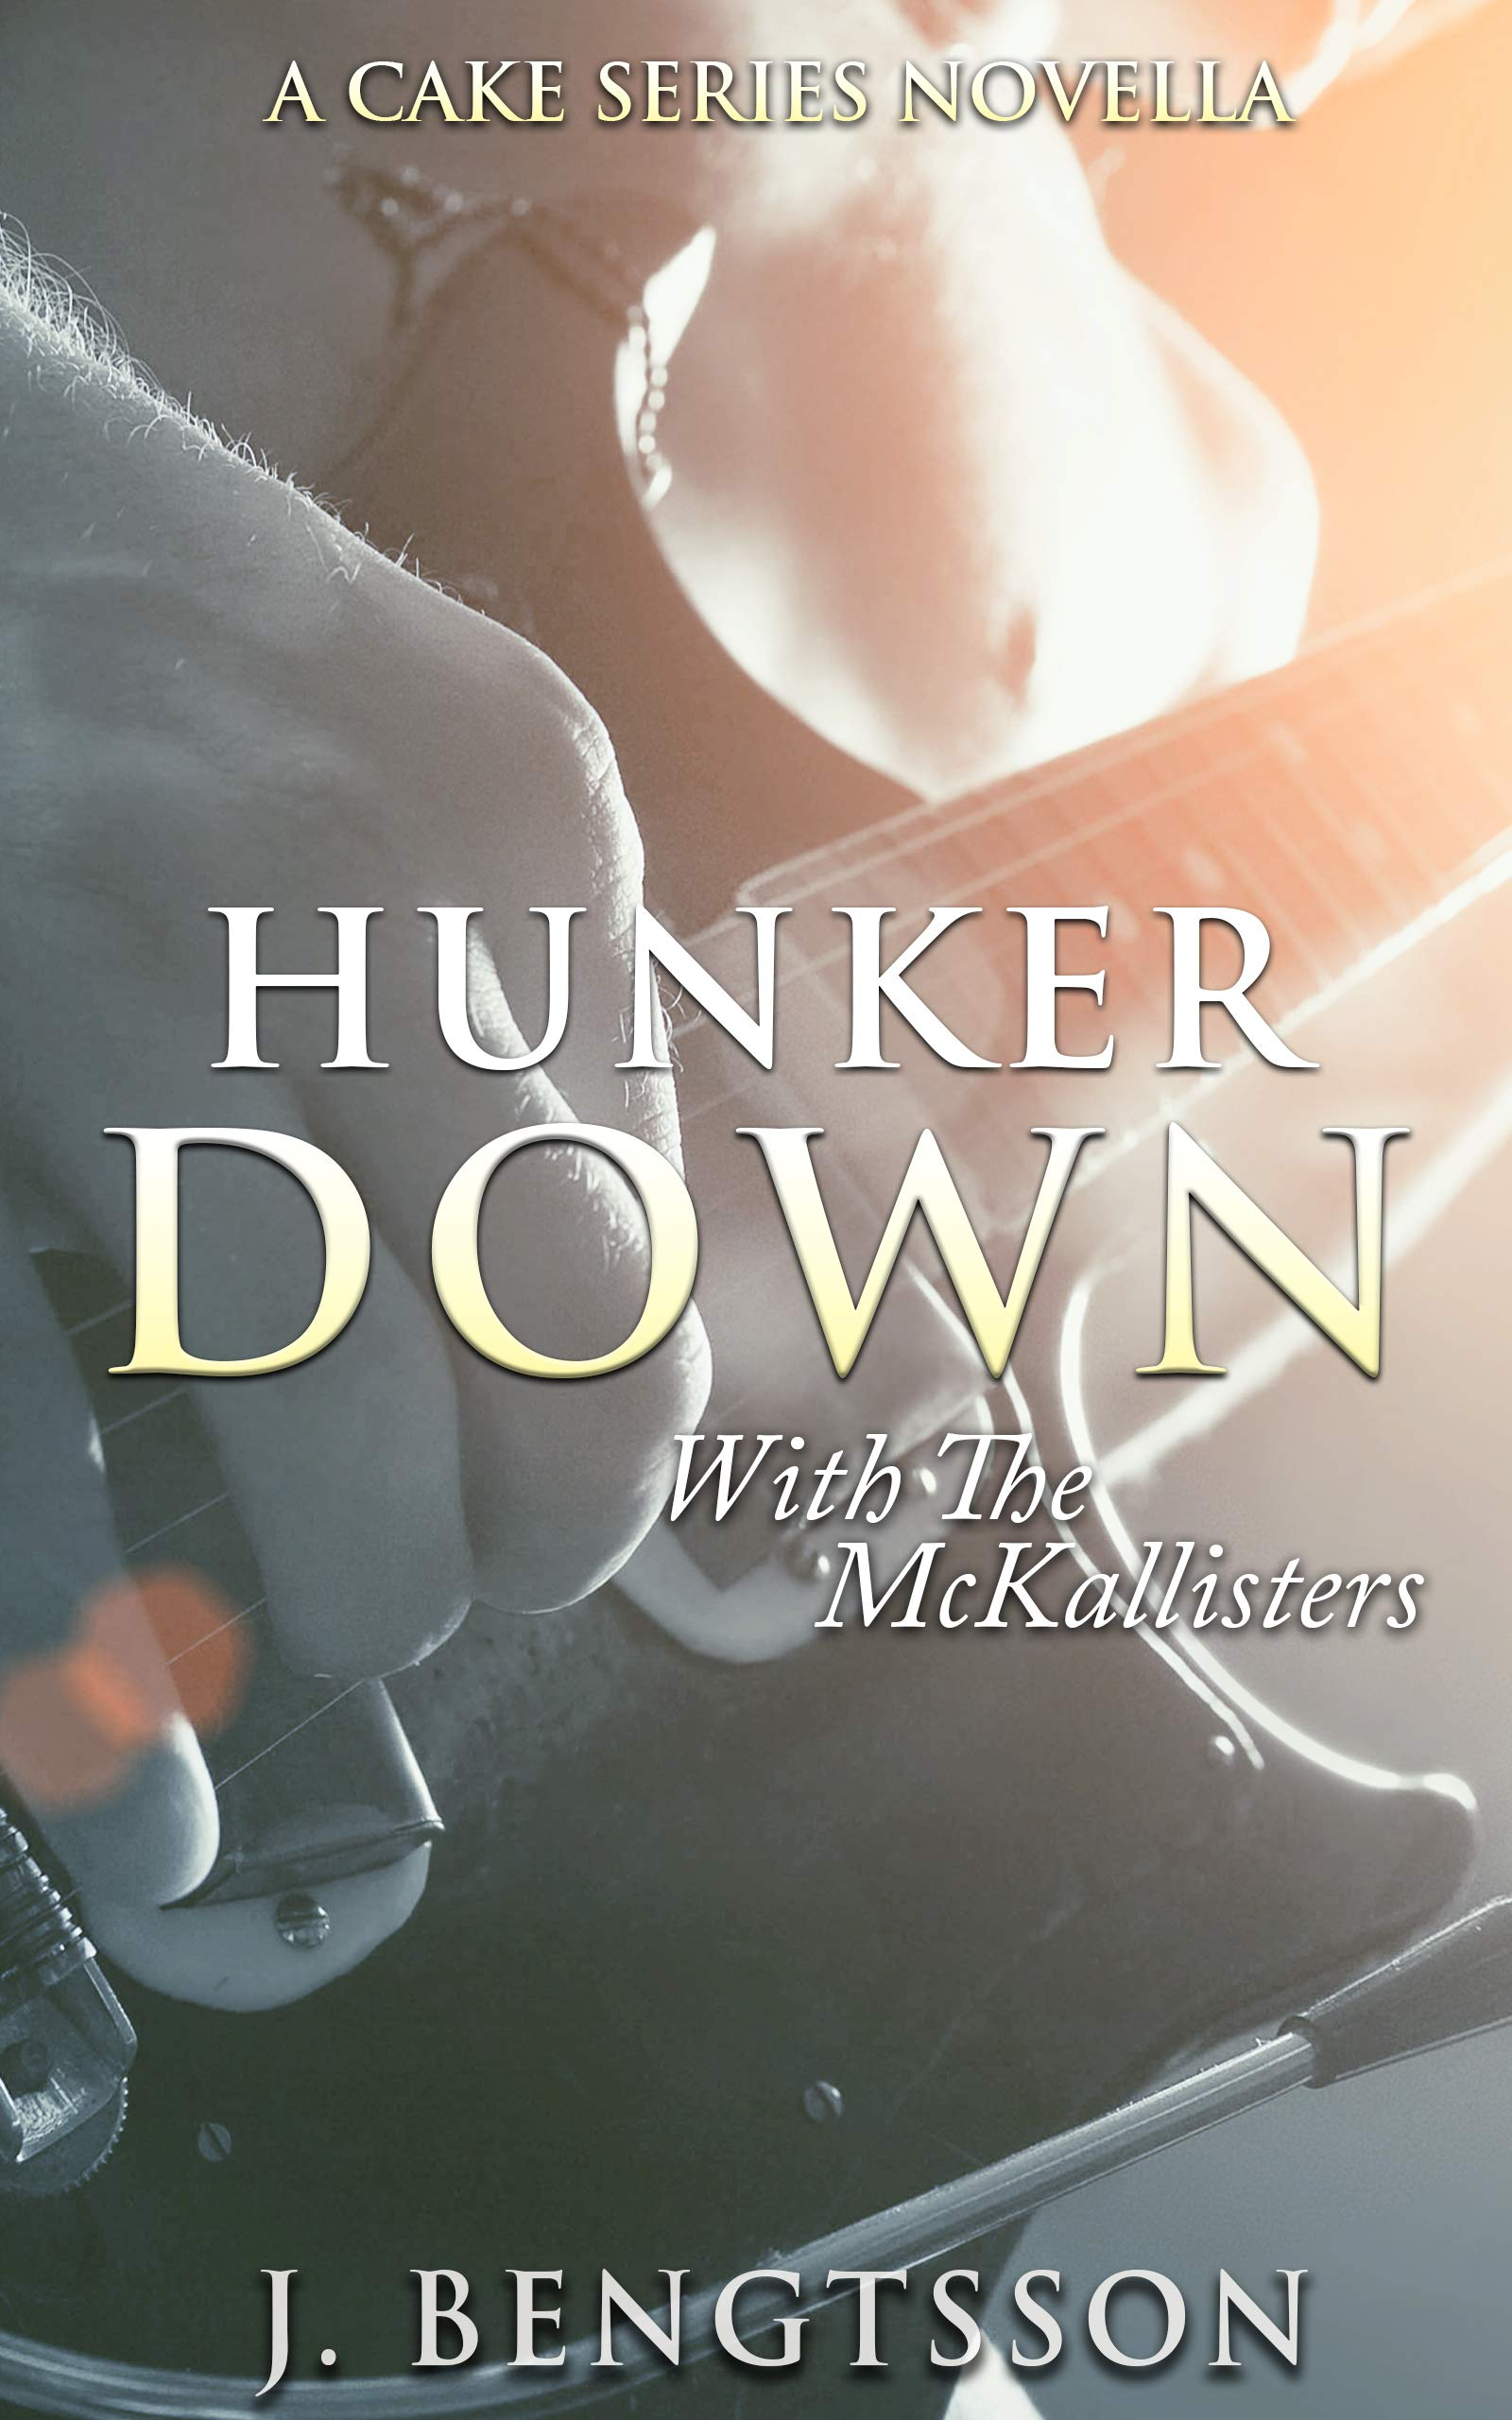 Hunker Down with the McKallisters: A Cake Series Novella